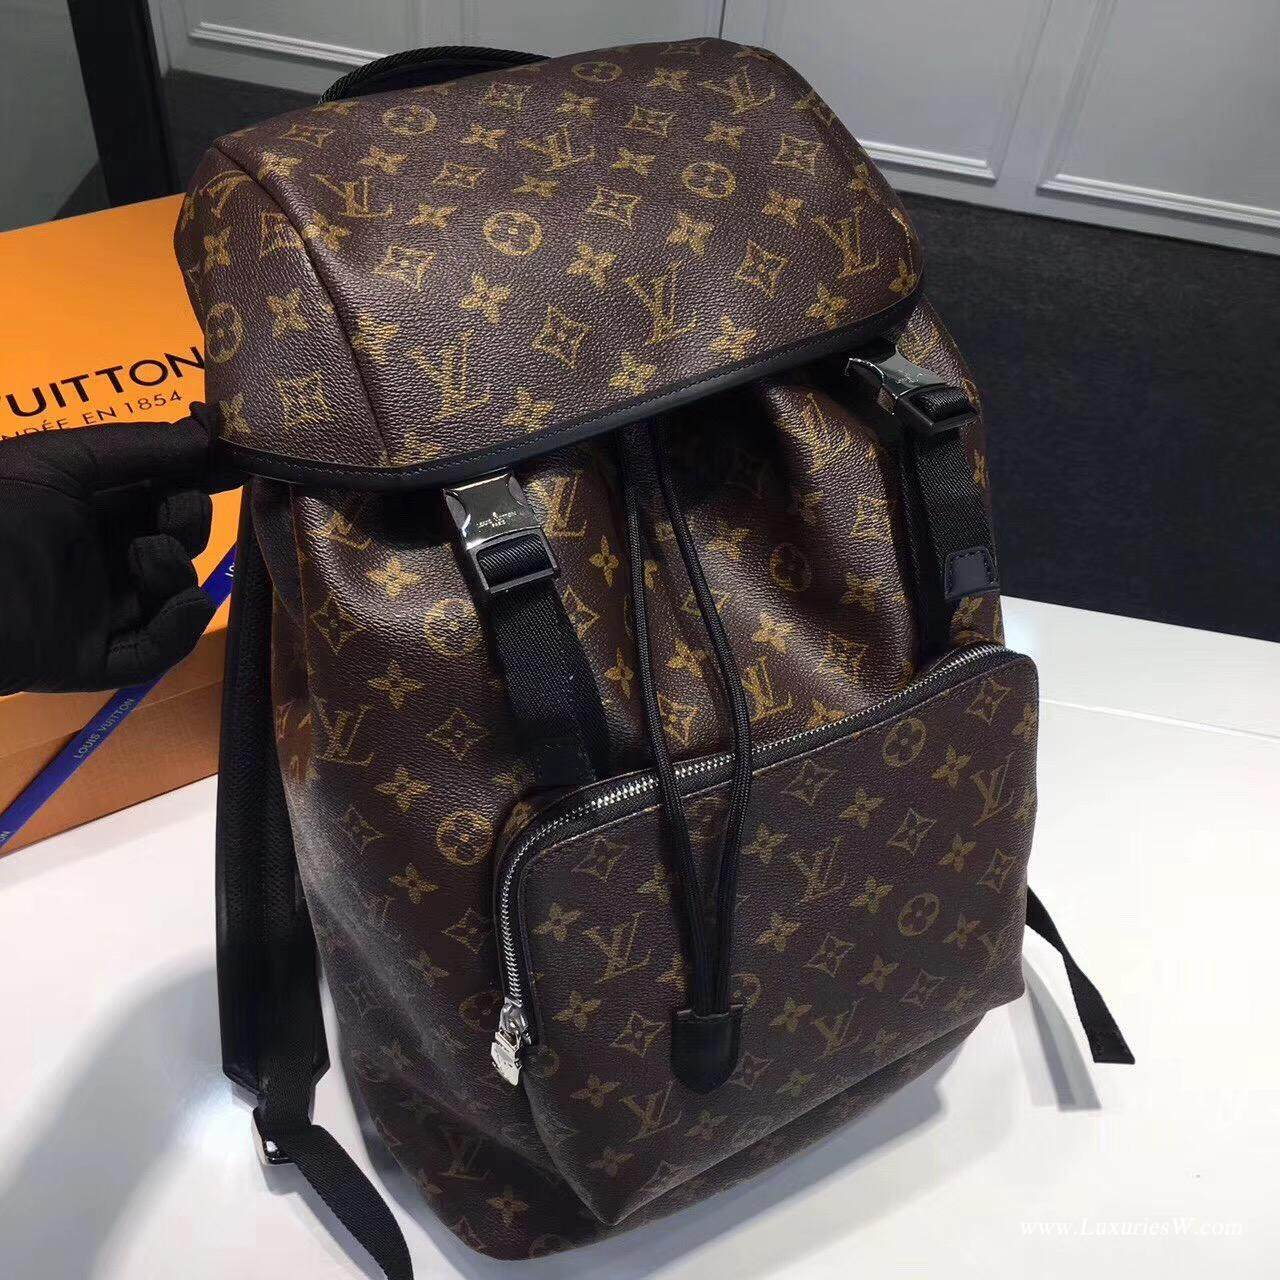 Lv Backpack Lv Man Bag Zack Louis Vuitton Brown Bag Lv Monogram Macassar Replica Bags Lv Bags